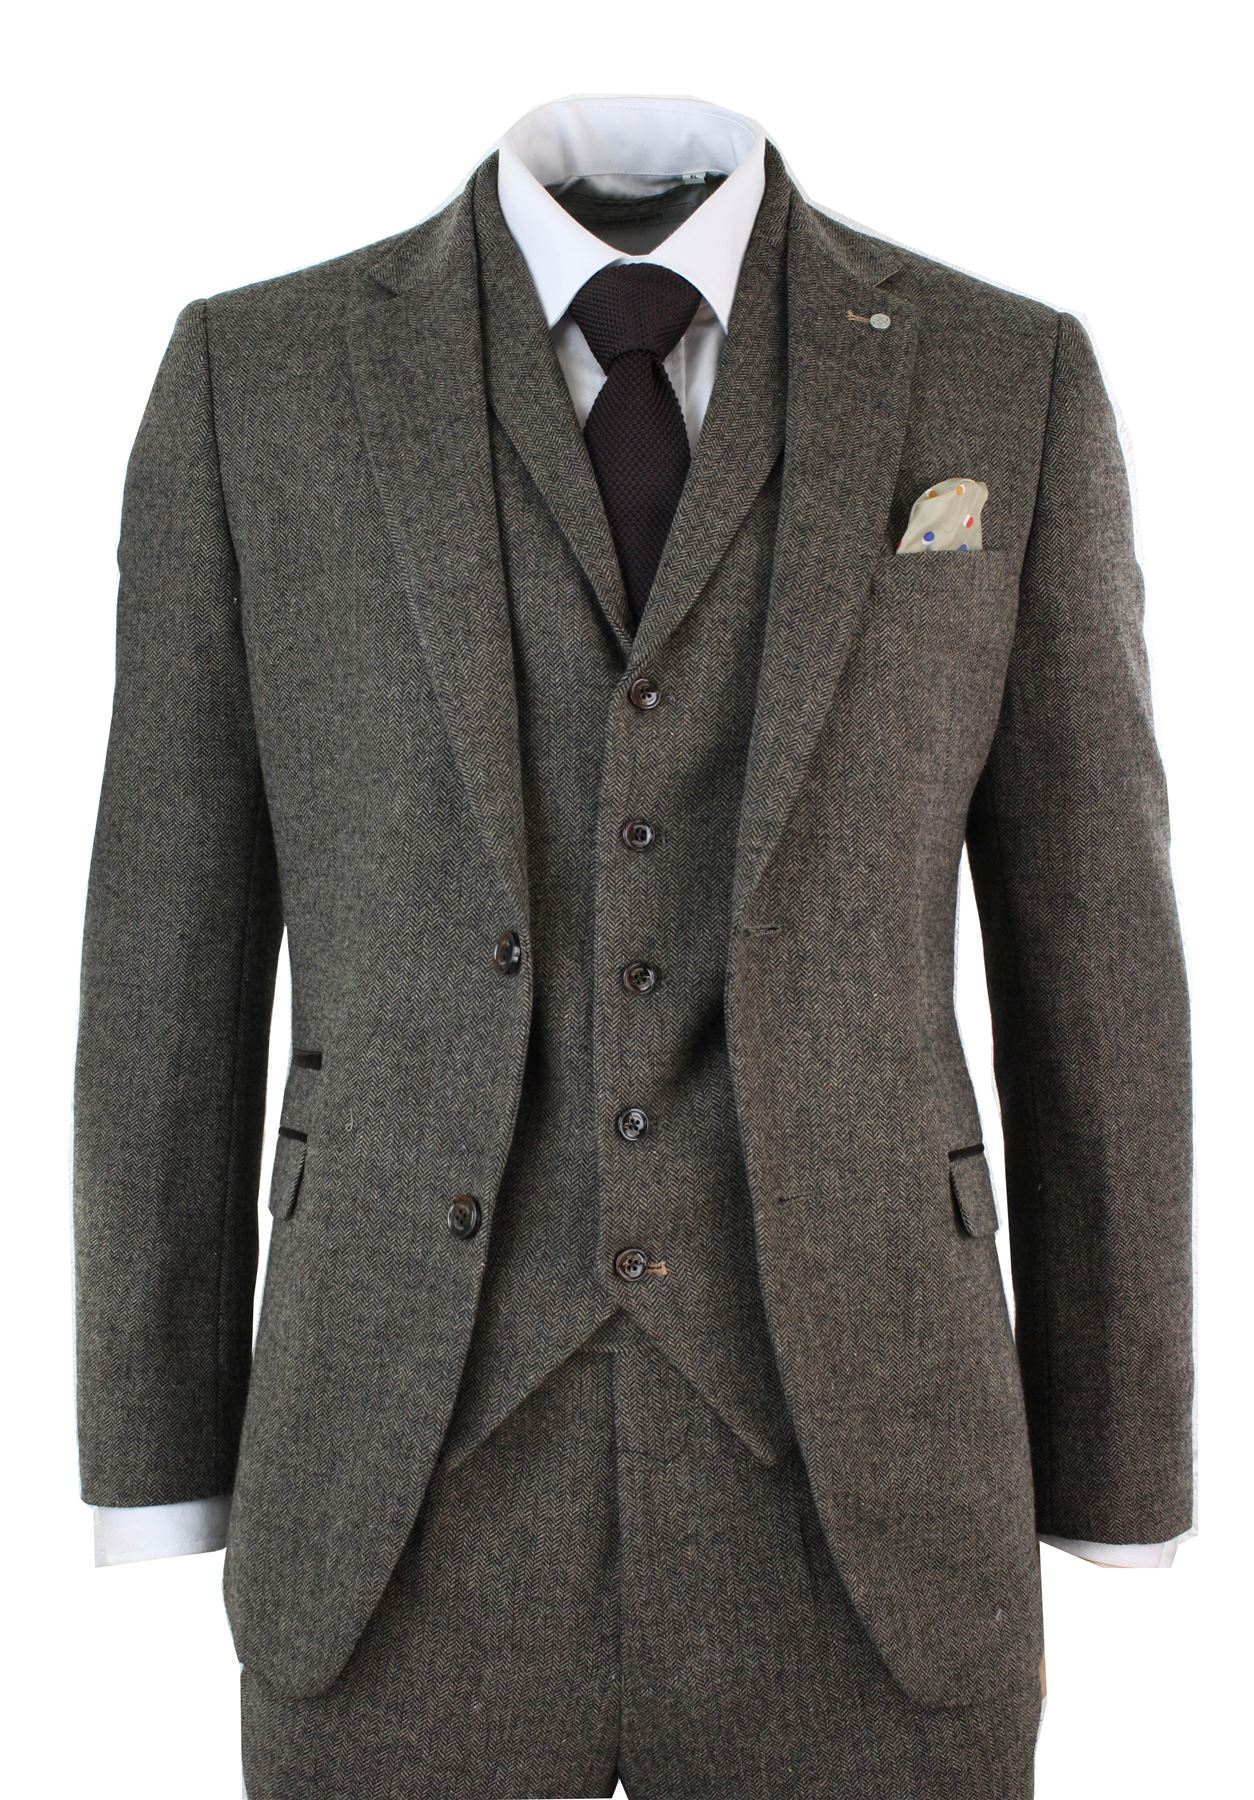 Looking For Mens Tweed 3 Piece Check Suits, Mens Tweed Wedding Suit, Mens Tweed Jacket and Waistcoats with Blue, Grey & Brown colour? Go to lolapalka.cf!